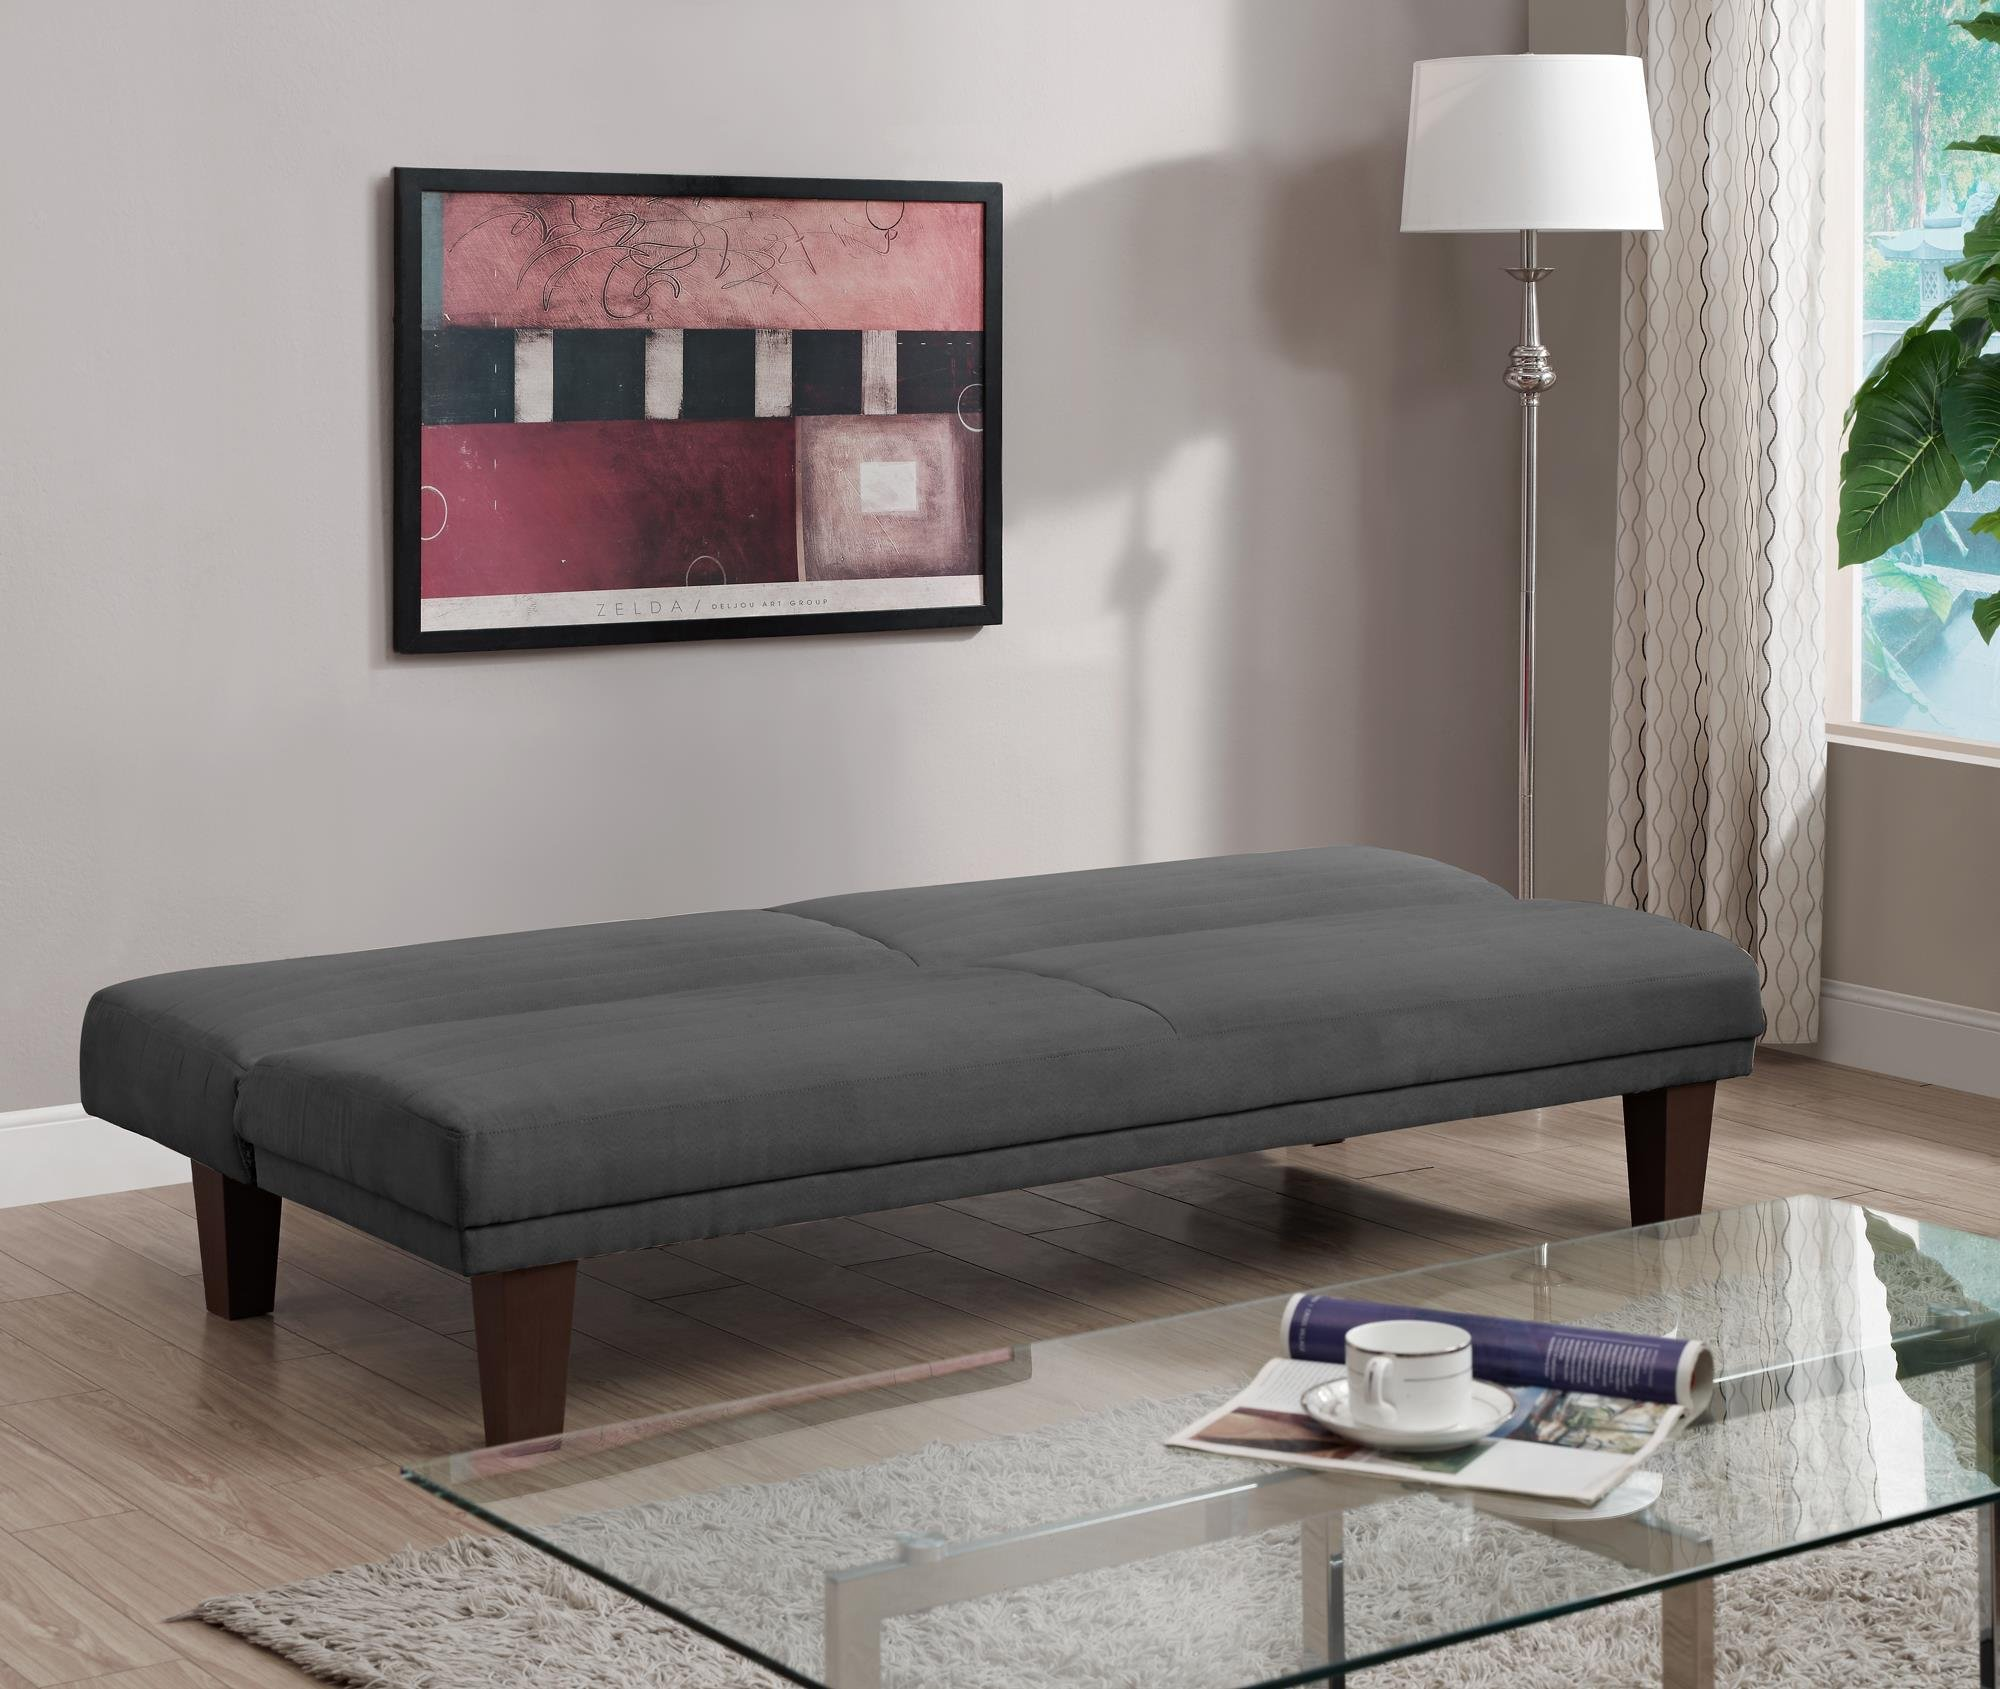 DHP Dillan Convertible Futon Couch Bed with Microfiber Upholstery and Wood Legs - Grey by DHP (Image #7)